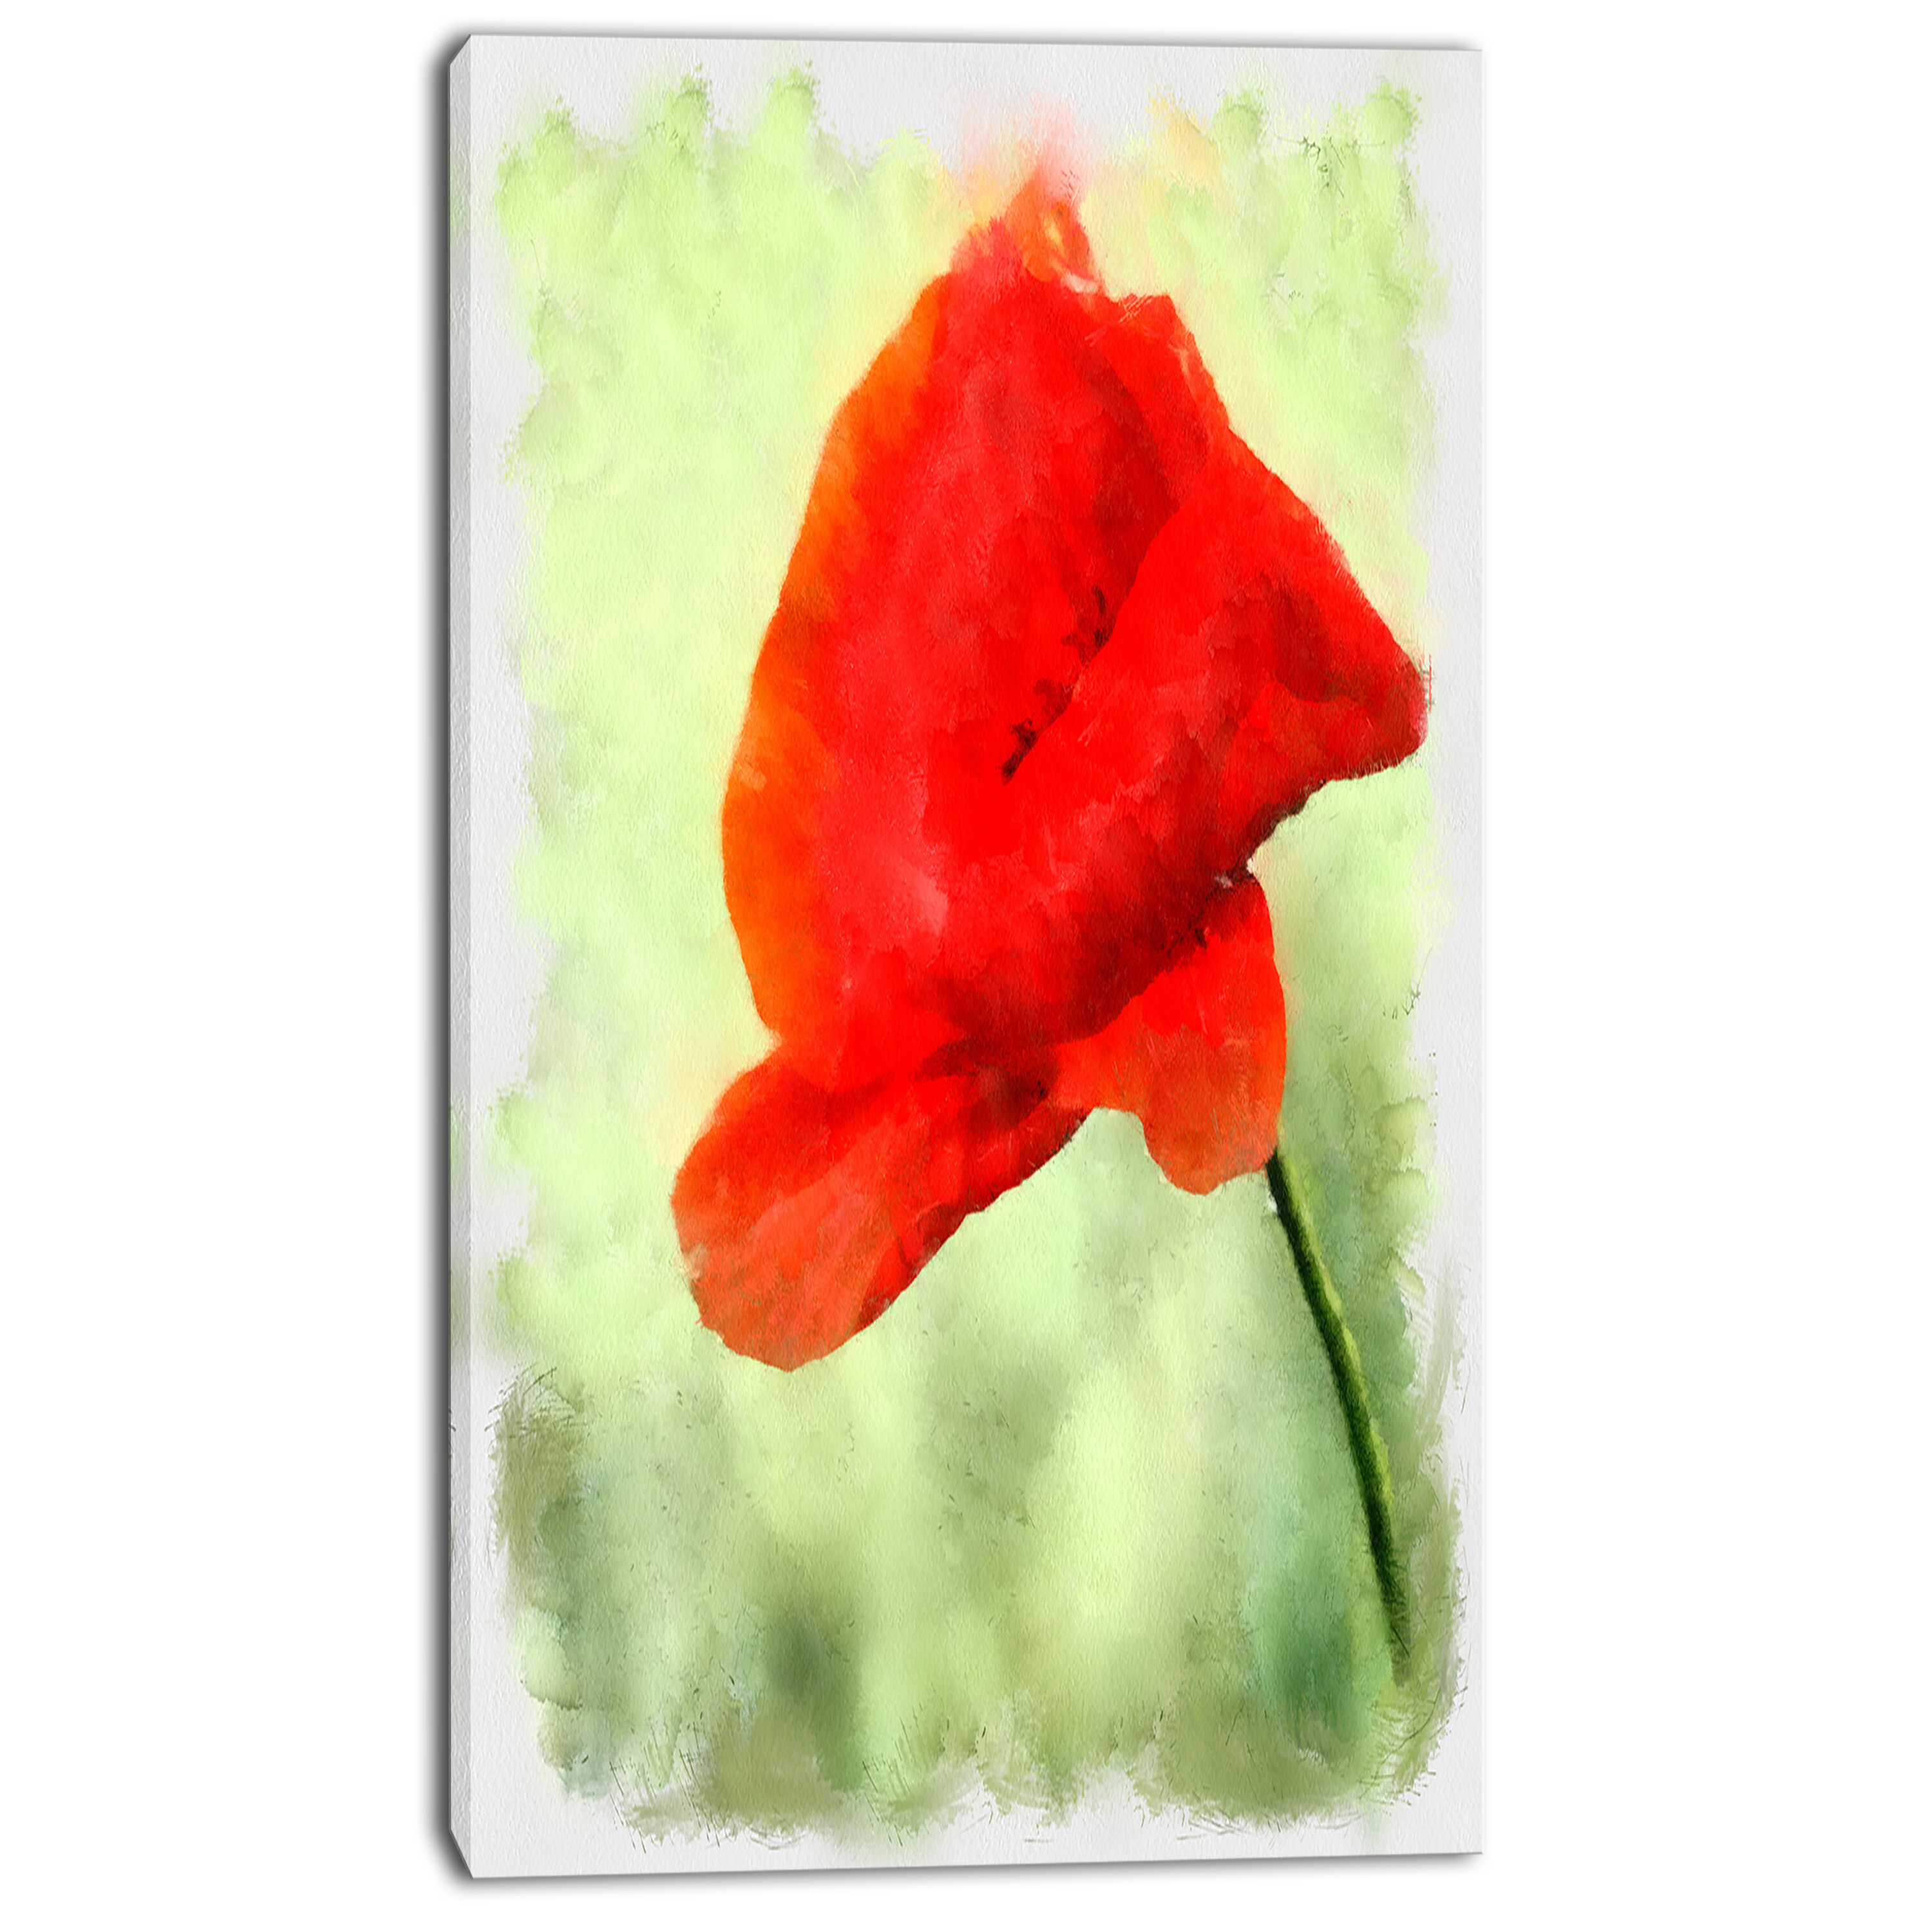 Designart Big Red Poppy Flower Watercolor Painting Print On